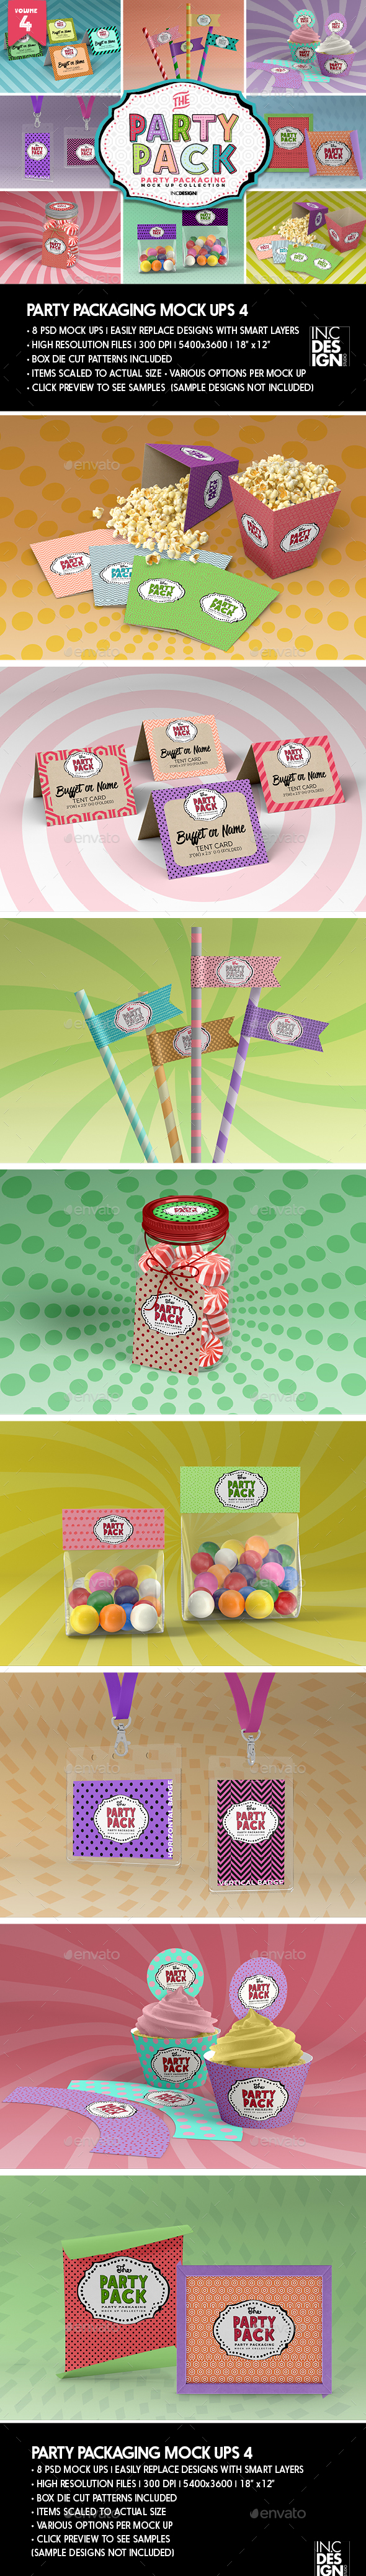 The Party Pack Packaging MockUps 4 - Miscellaneous Packaging